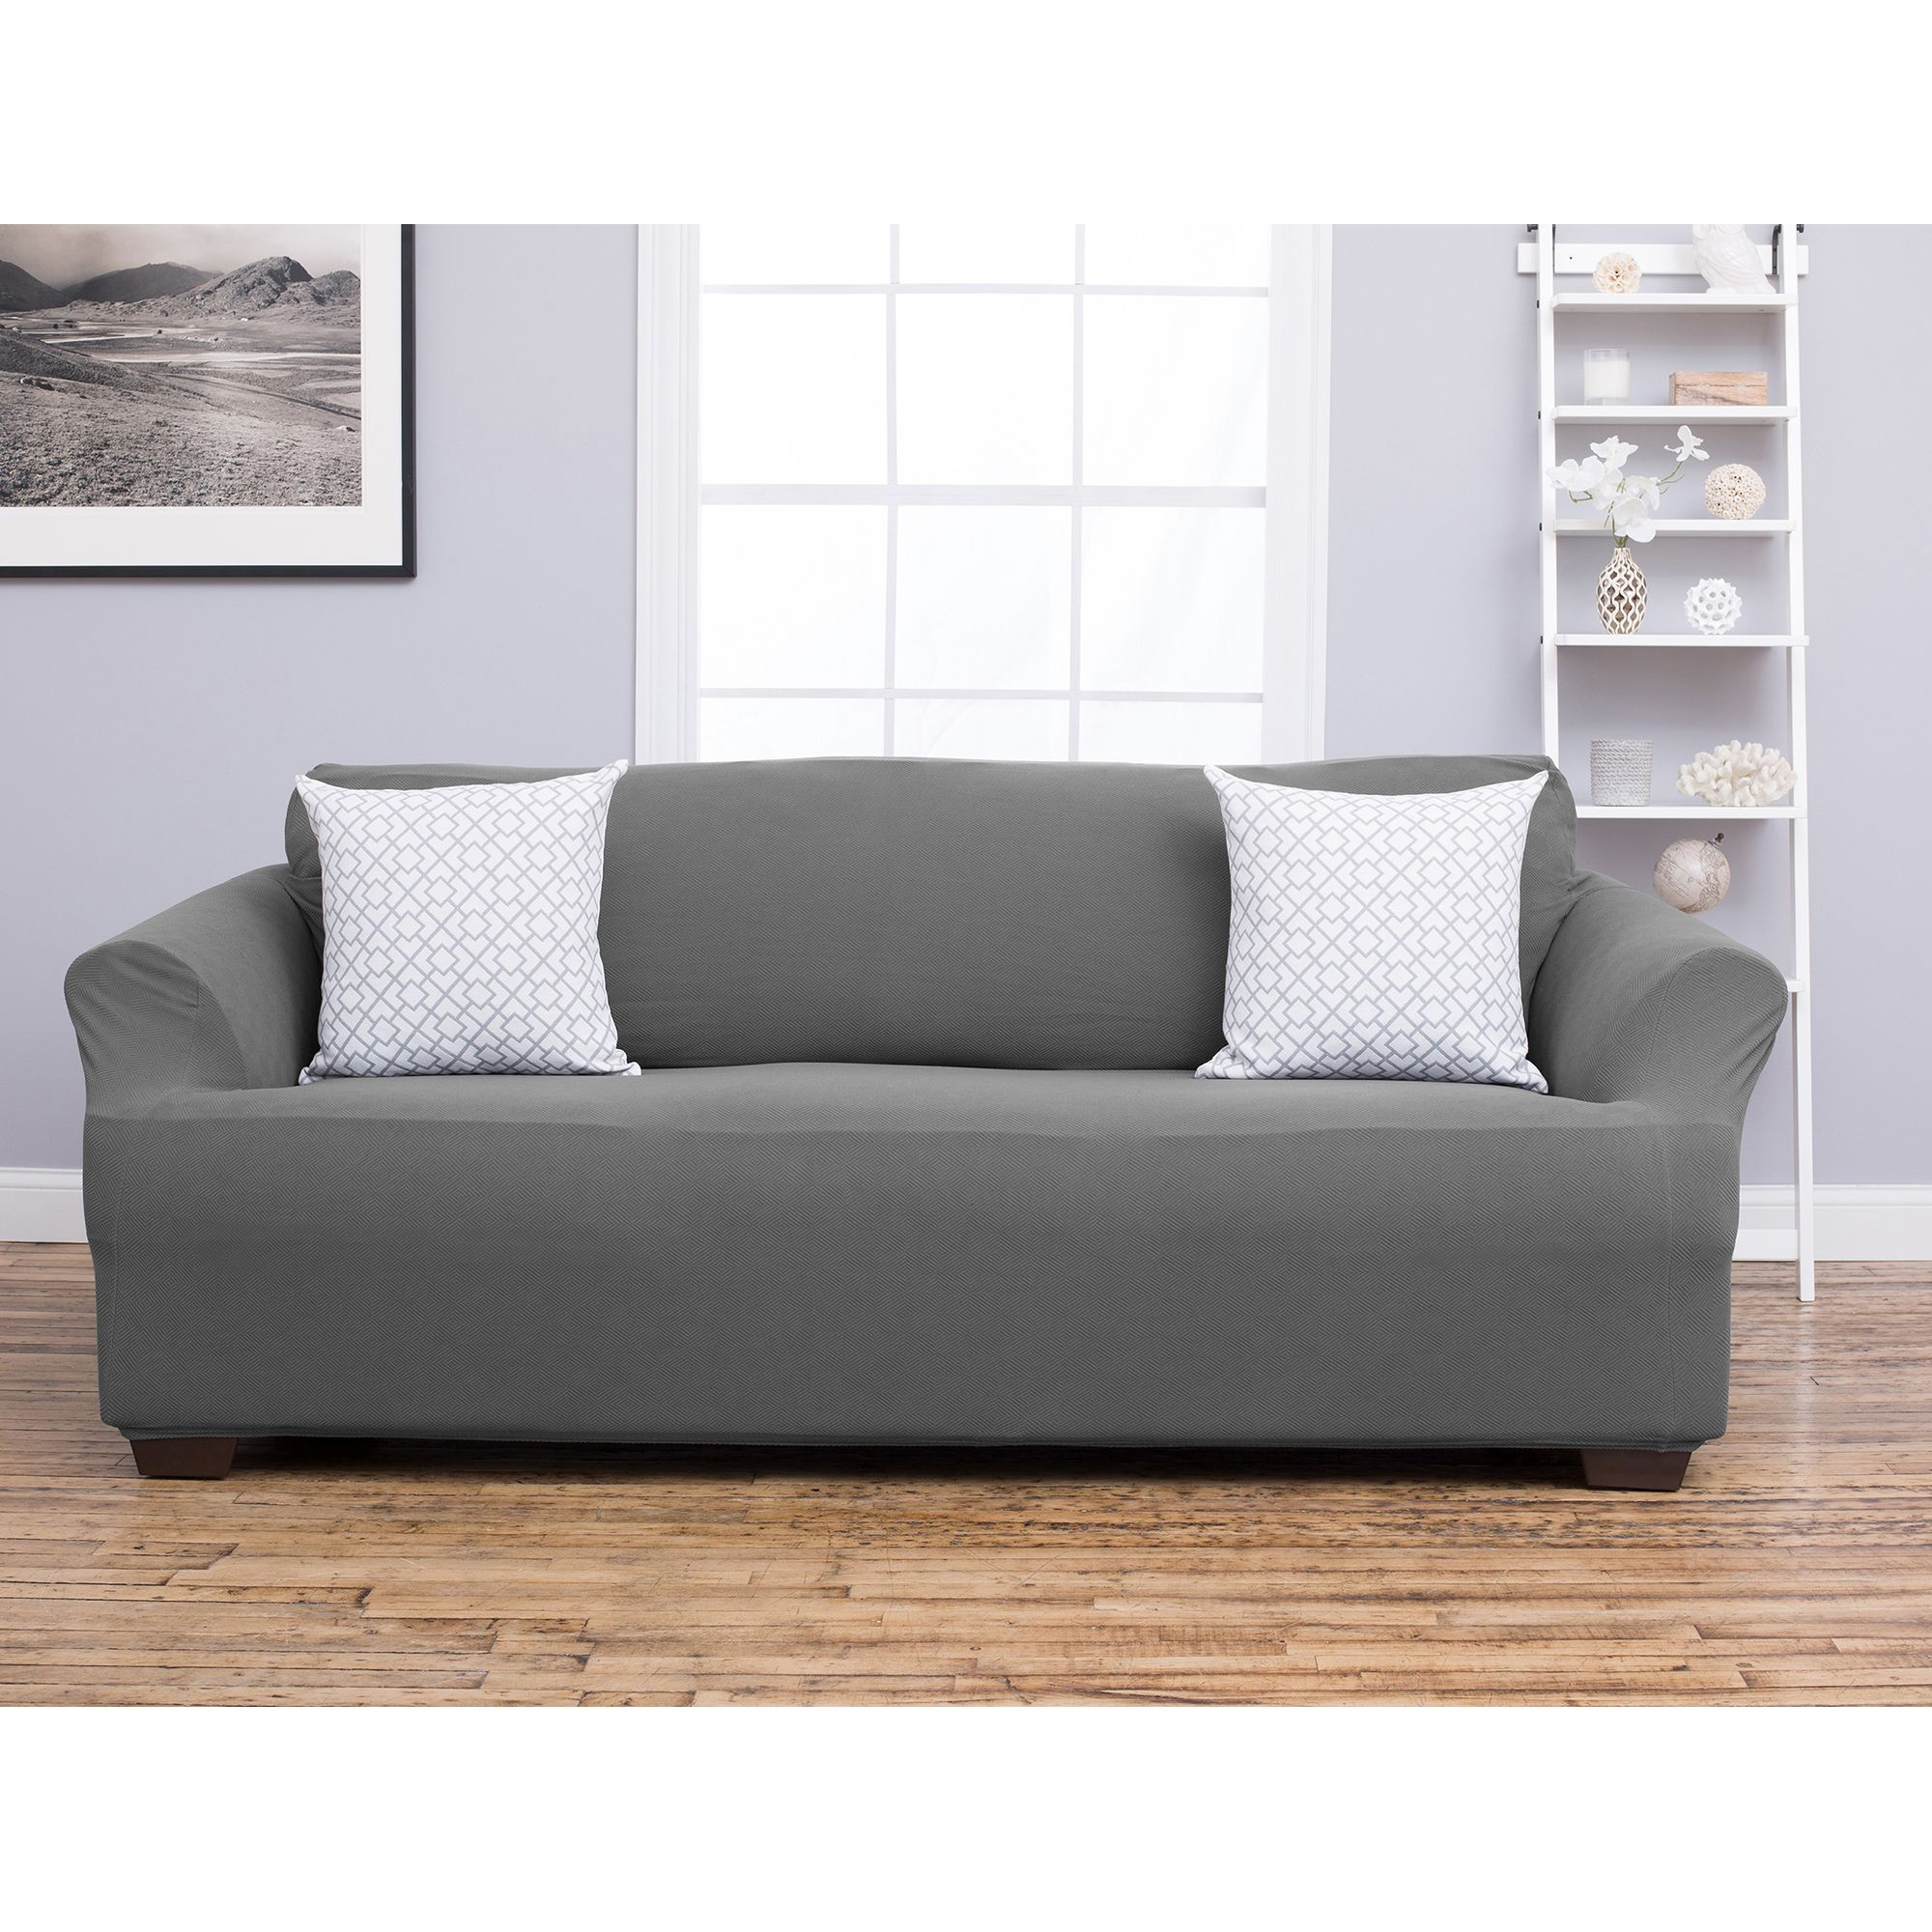 Cambria Heavyweight Sofa Slipcover Bed Bath & Beyond